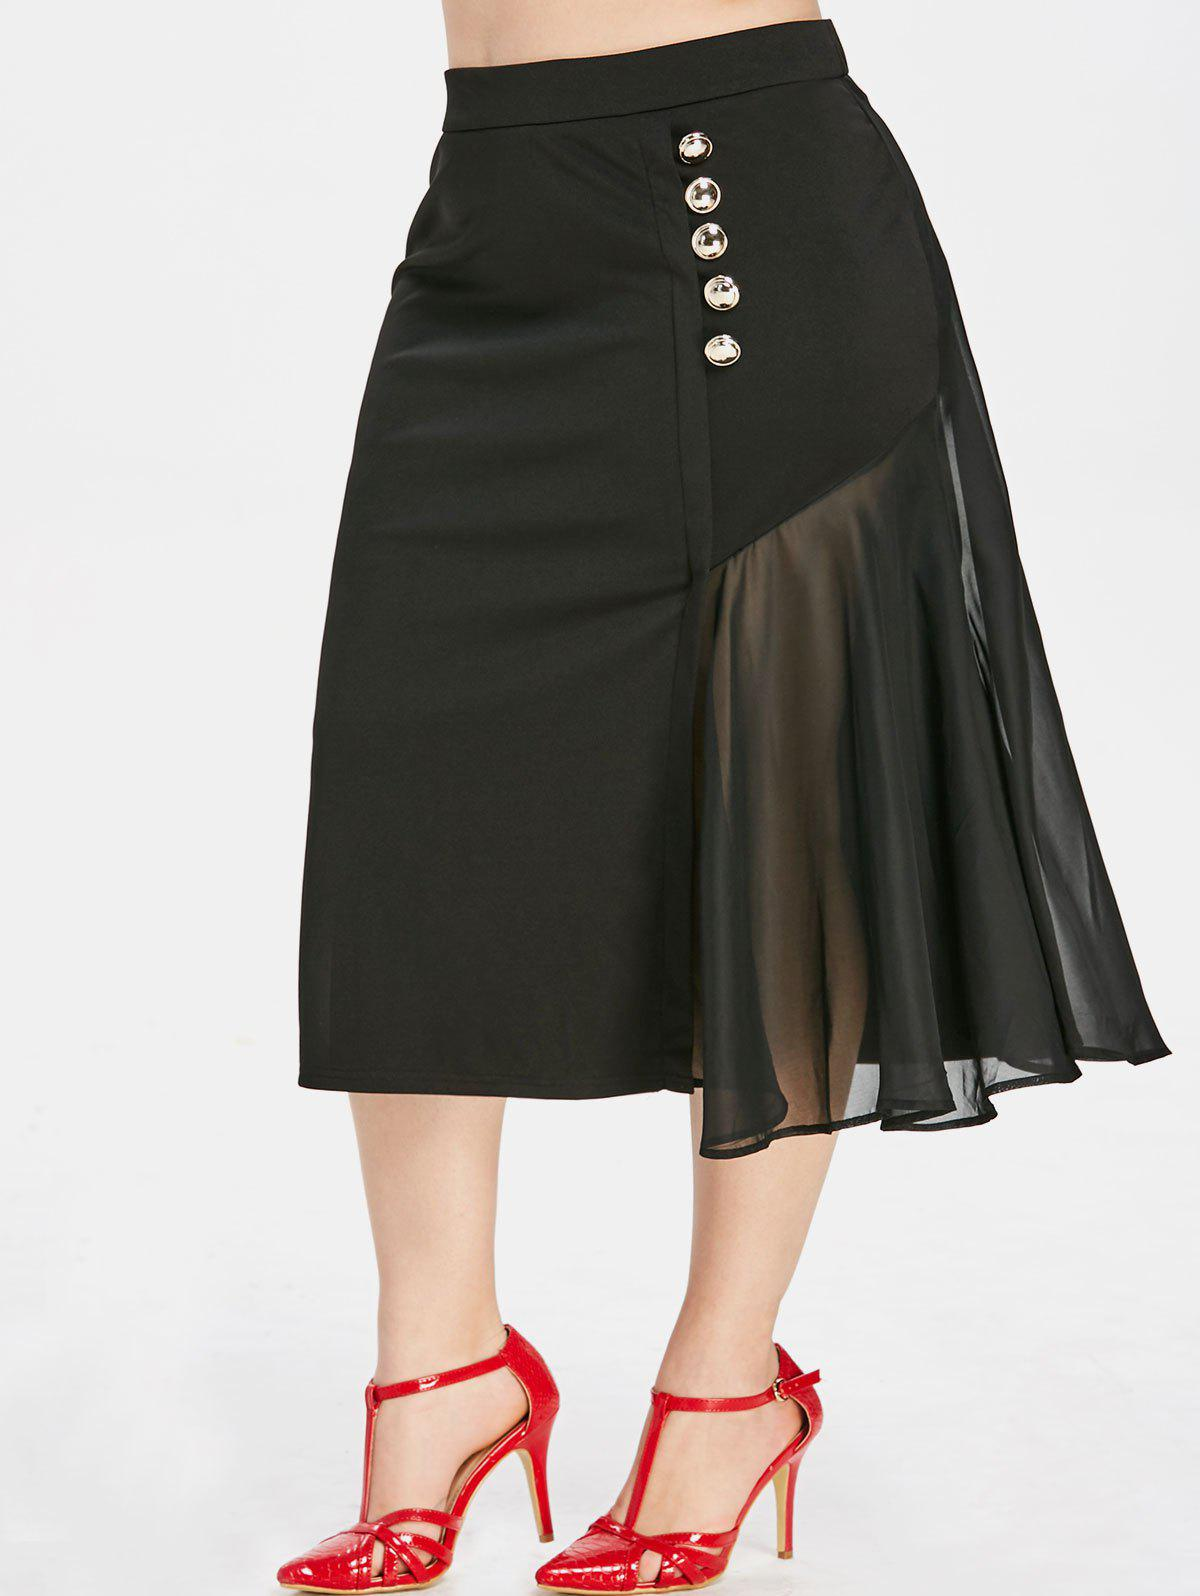 4c1bebed651 2018 Plus Size High Rise Spliced Midi Skirt In Black 4x